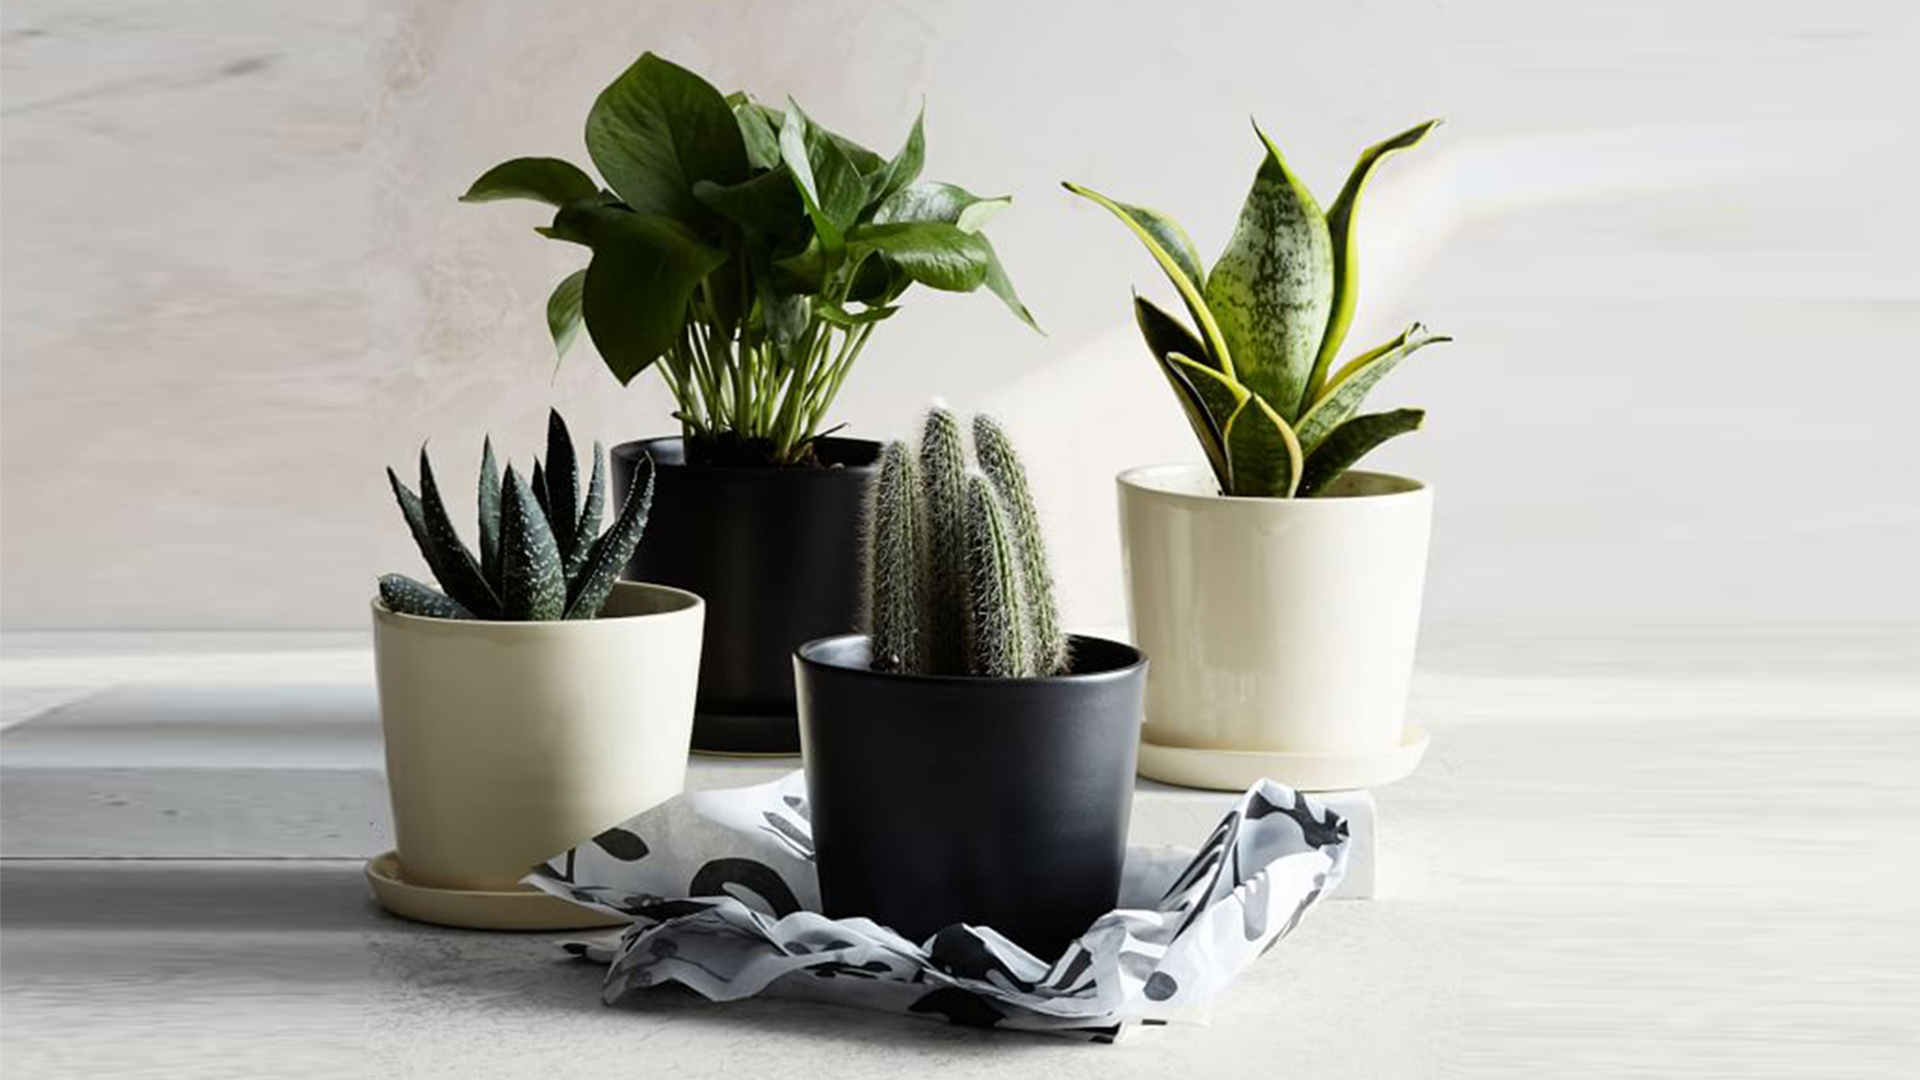 Big Pots Indoor Plants: Where To Buy Planters And Flower Pots For Outdoor And